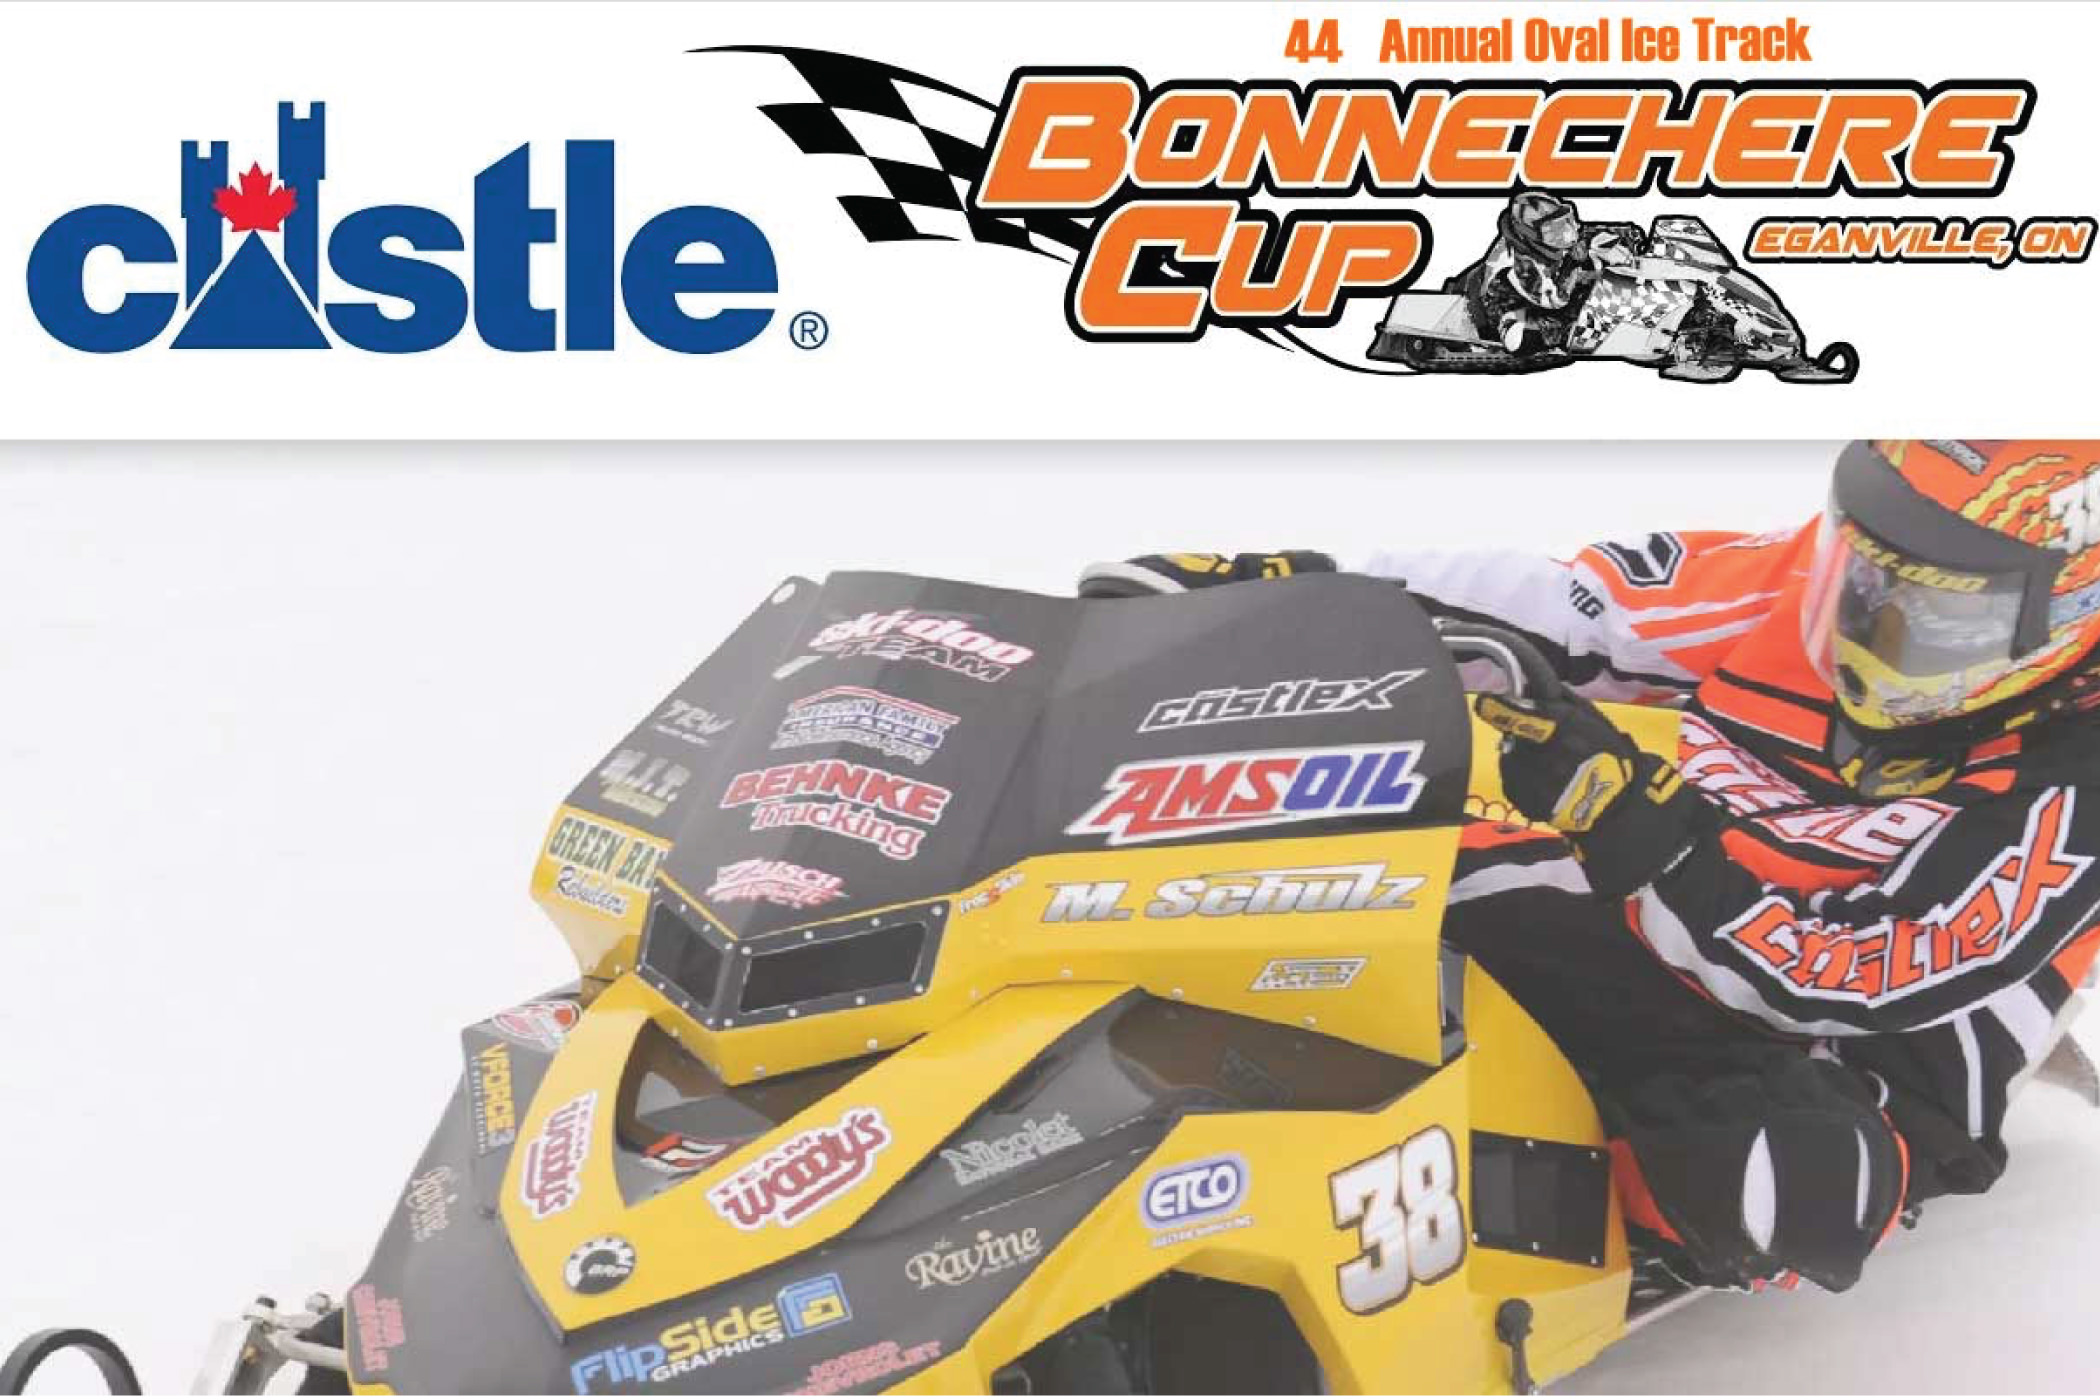 Castle Proud Sponsor of Bonnechere Cup